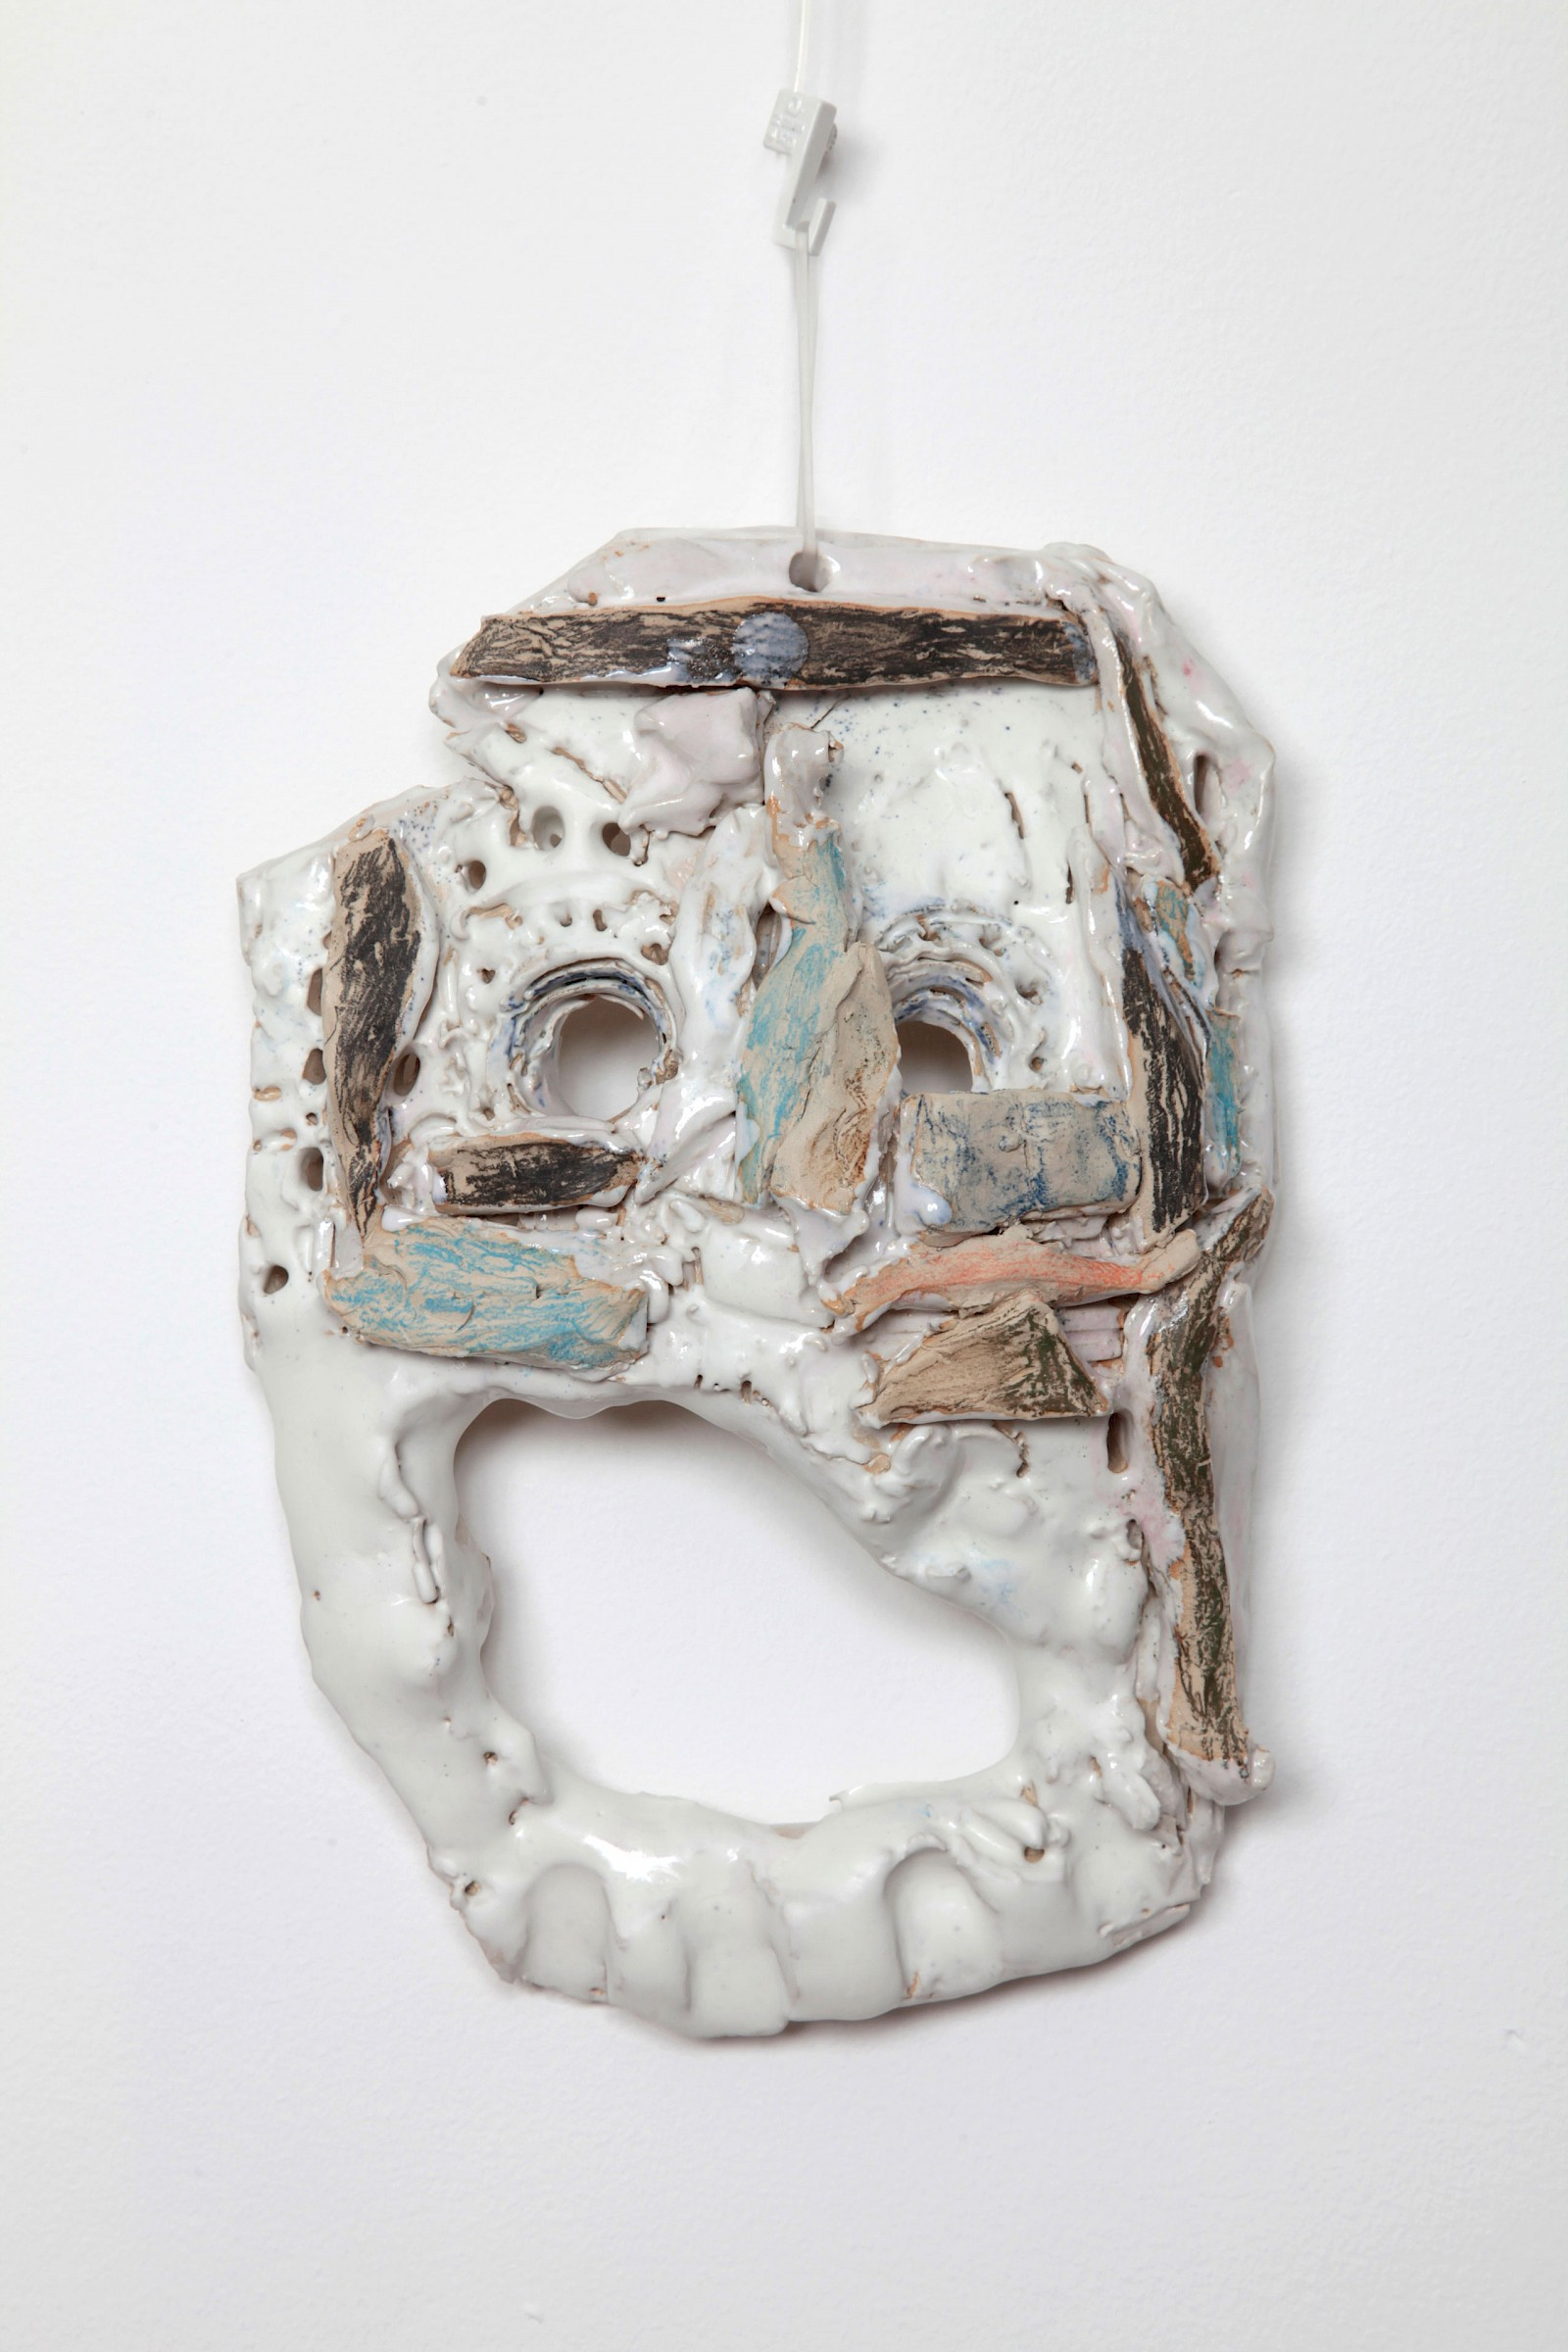 Image - Ceramic mask by Emilie Frosio